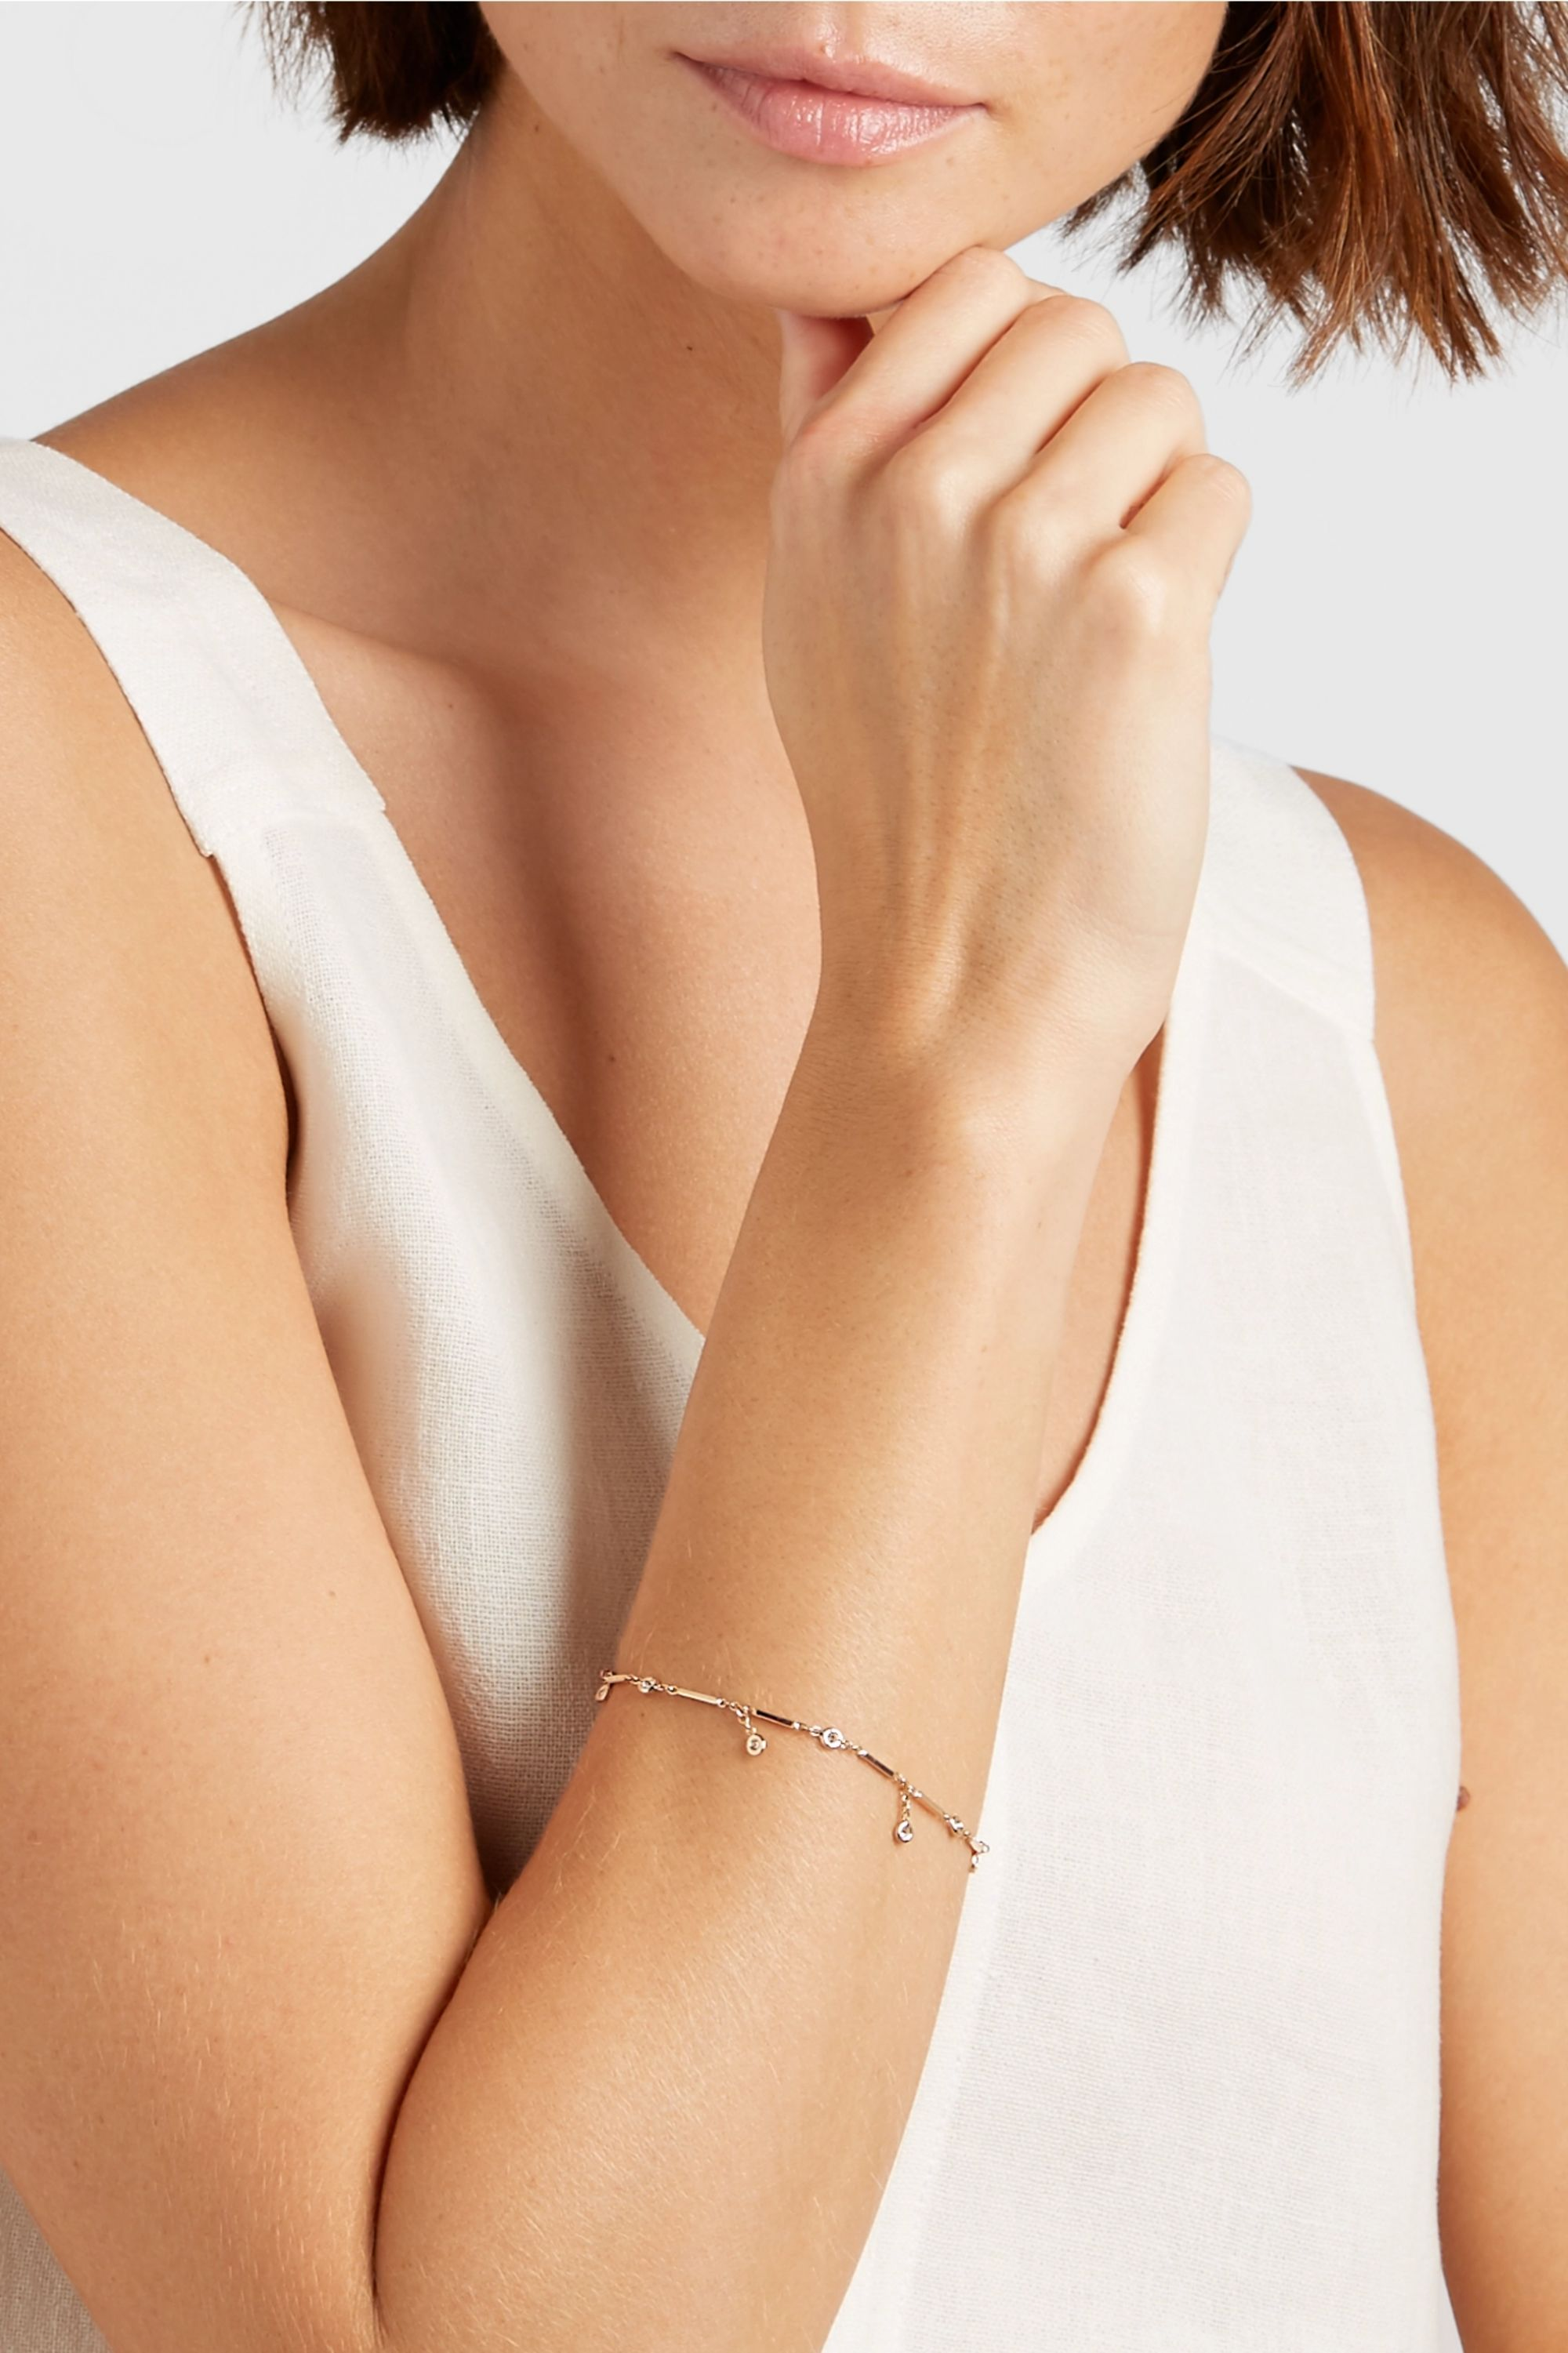 Jacquie Aiche 14-karat rose gold diamond bracelet